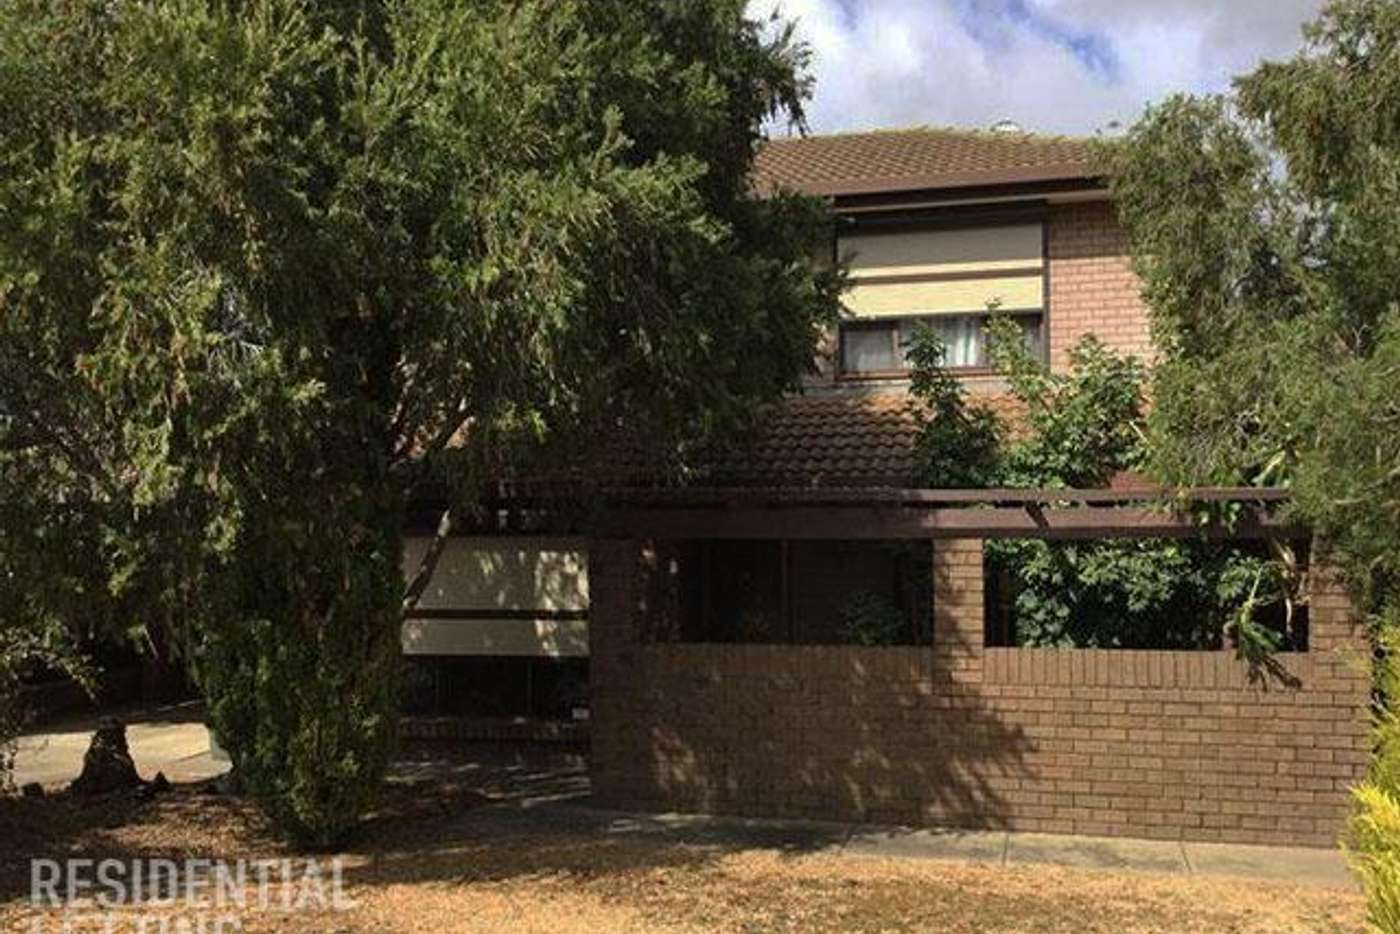 Main view of Homely house listing, 14 Phillip Avenue, Morphett Vale SA 5162